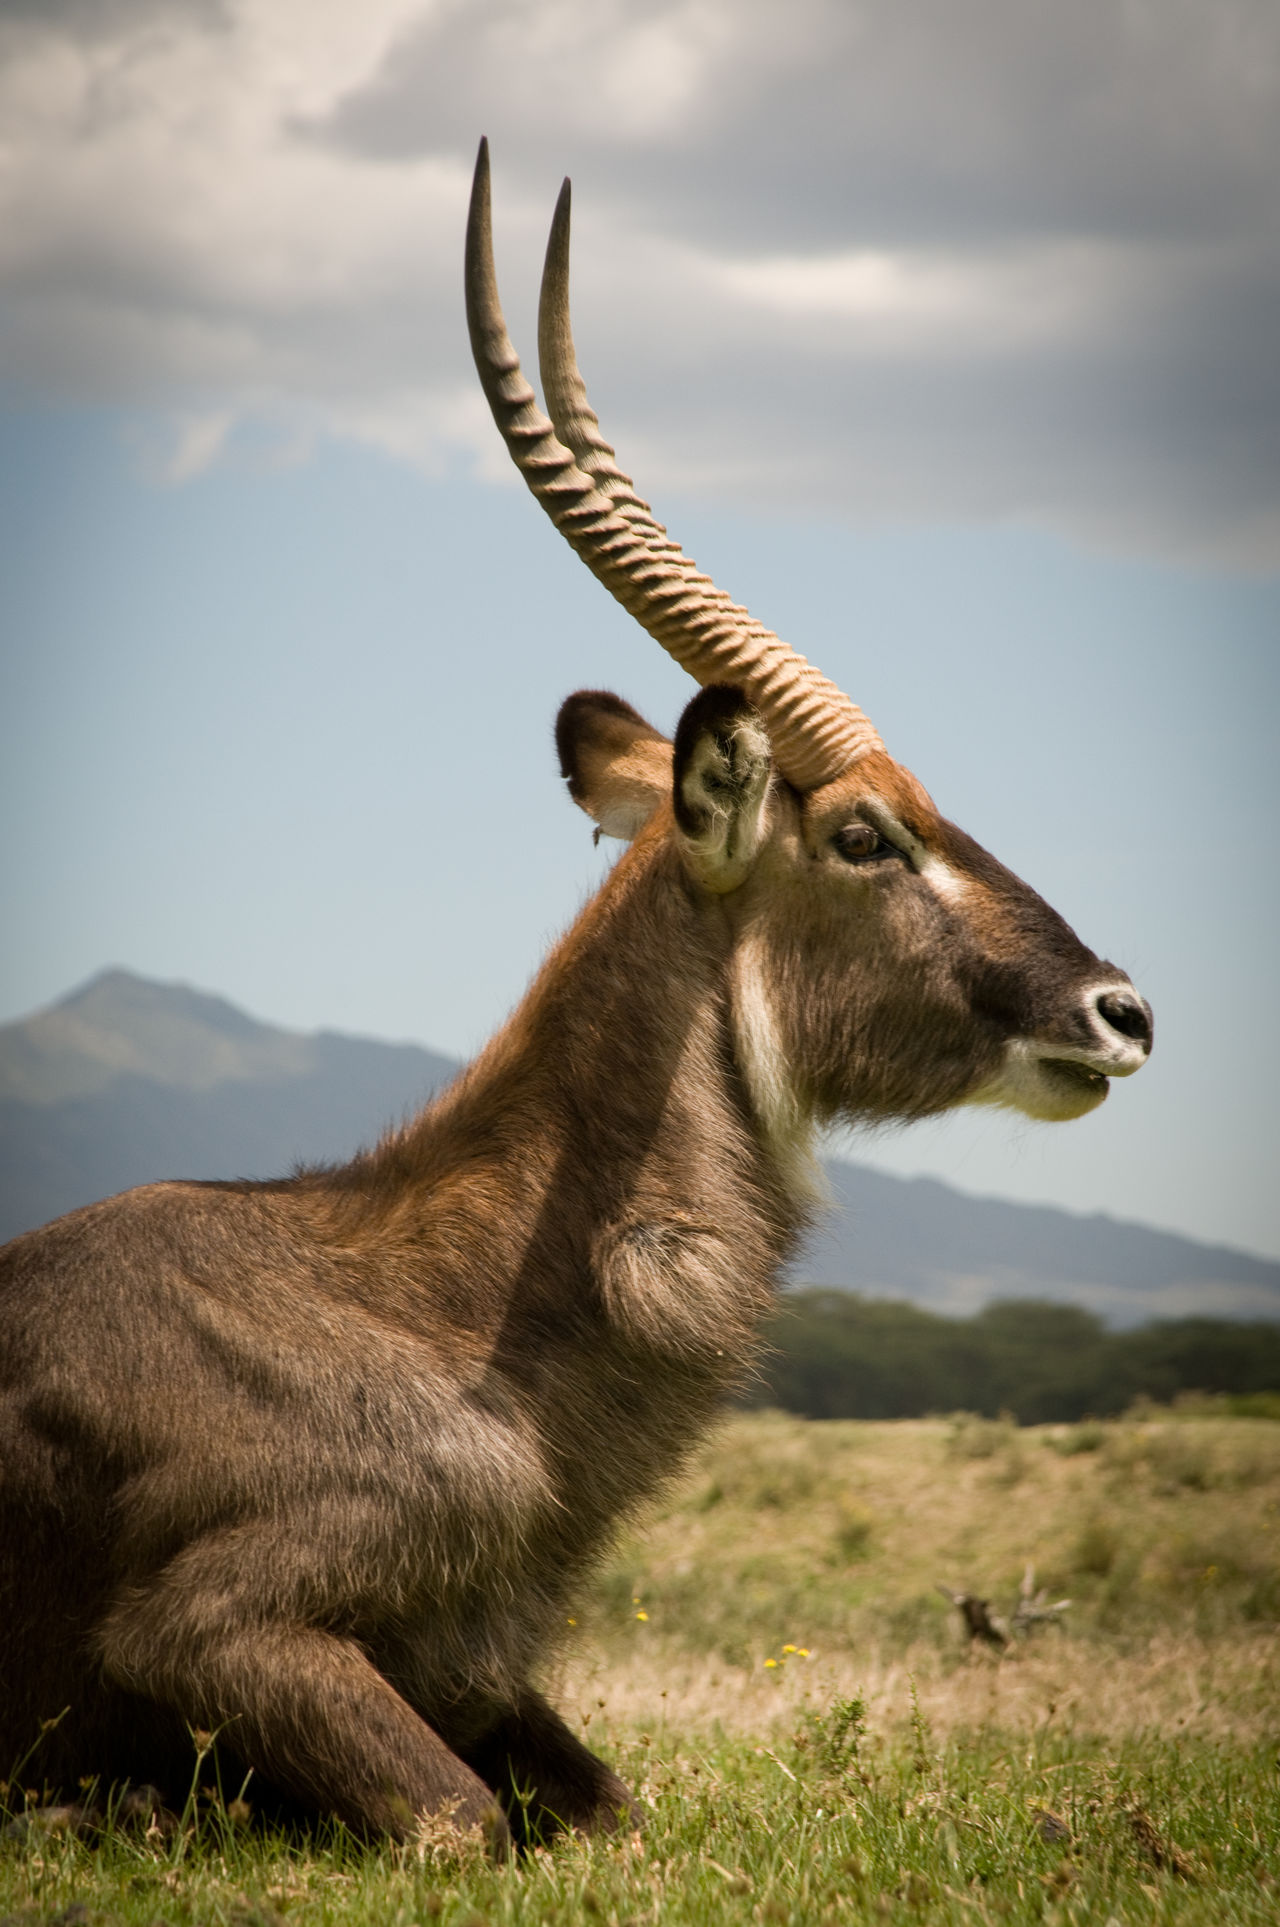 Amimal Faces Animal Photography Animal Portrait Animal Wildlife Animals In The Wild Beauty In Nature Cresent Island Deeply Relaxed Kenya Longonot Naivasha Nature Relaxed Waterbuck Wildlife Wildlife & Nature Wildlife Photography